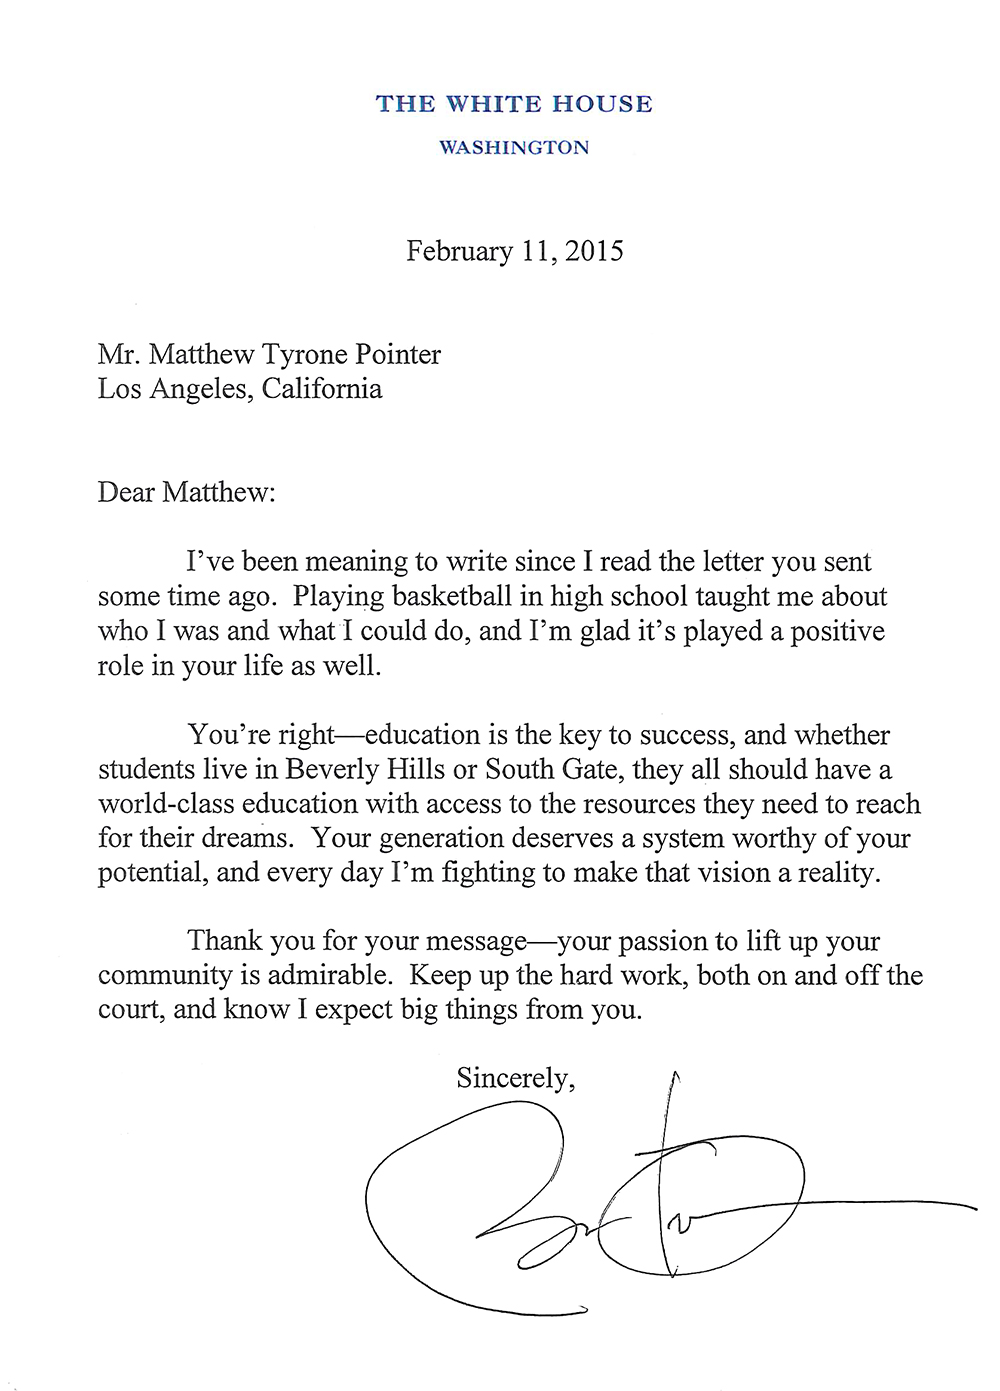 writing to president obama